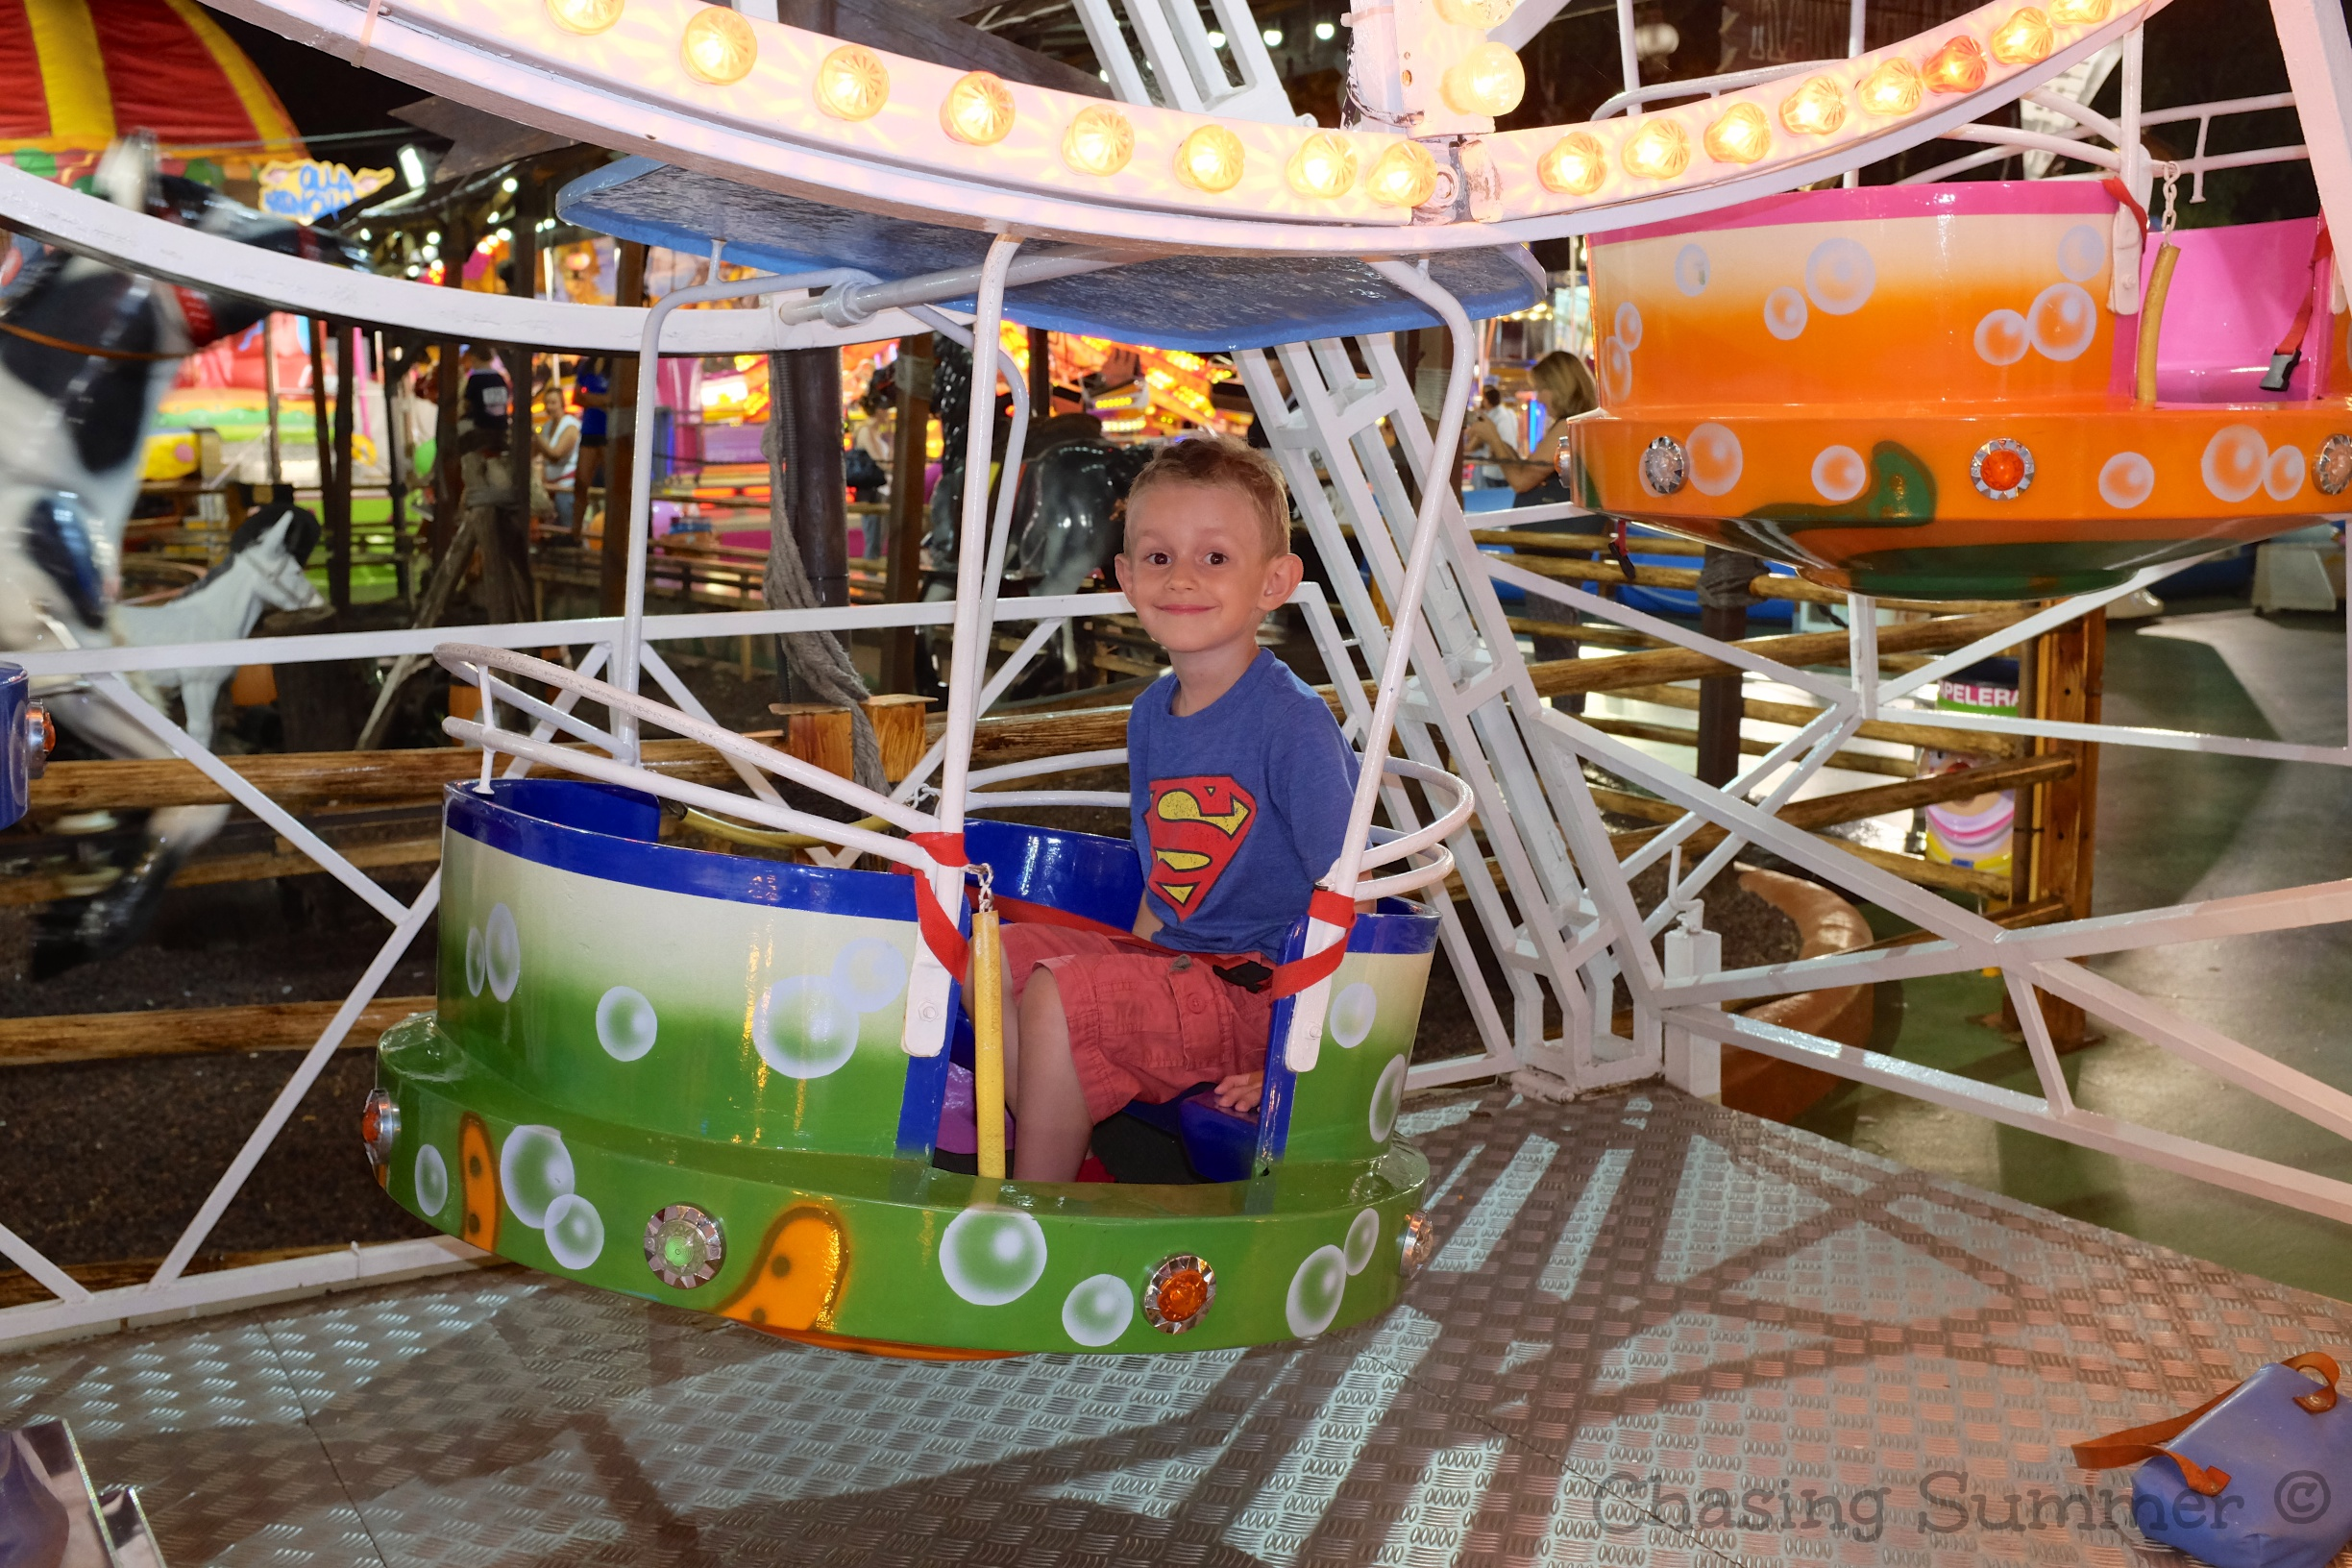 Fun Fair at Platja D'Aro